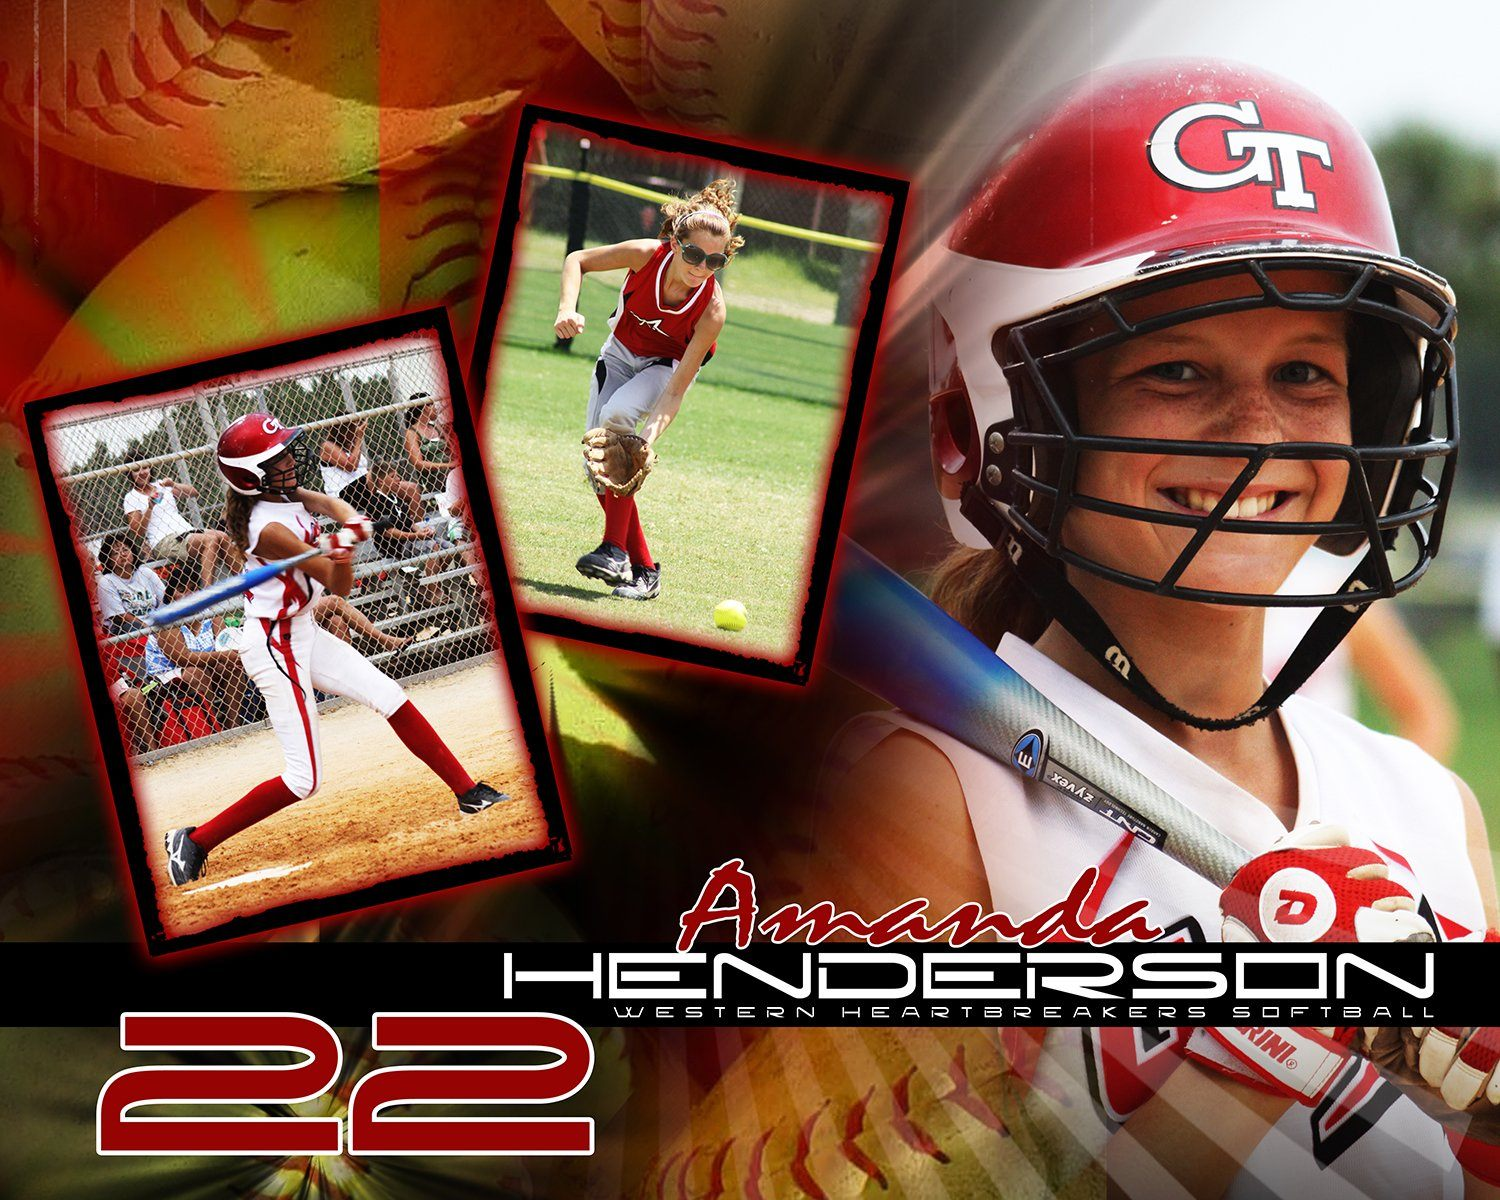 Softball v.5 - Action Drop In Poster/Banner Downloadable Template Photo Solutions PSMGraphix